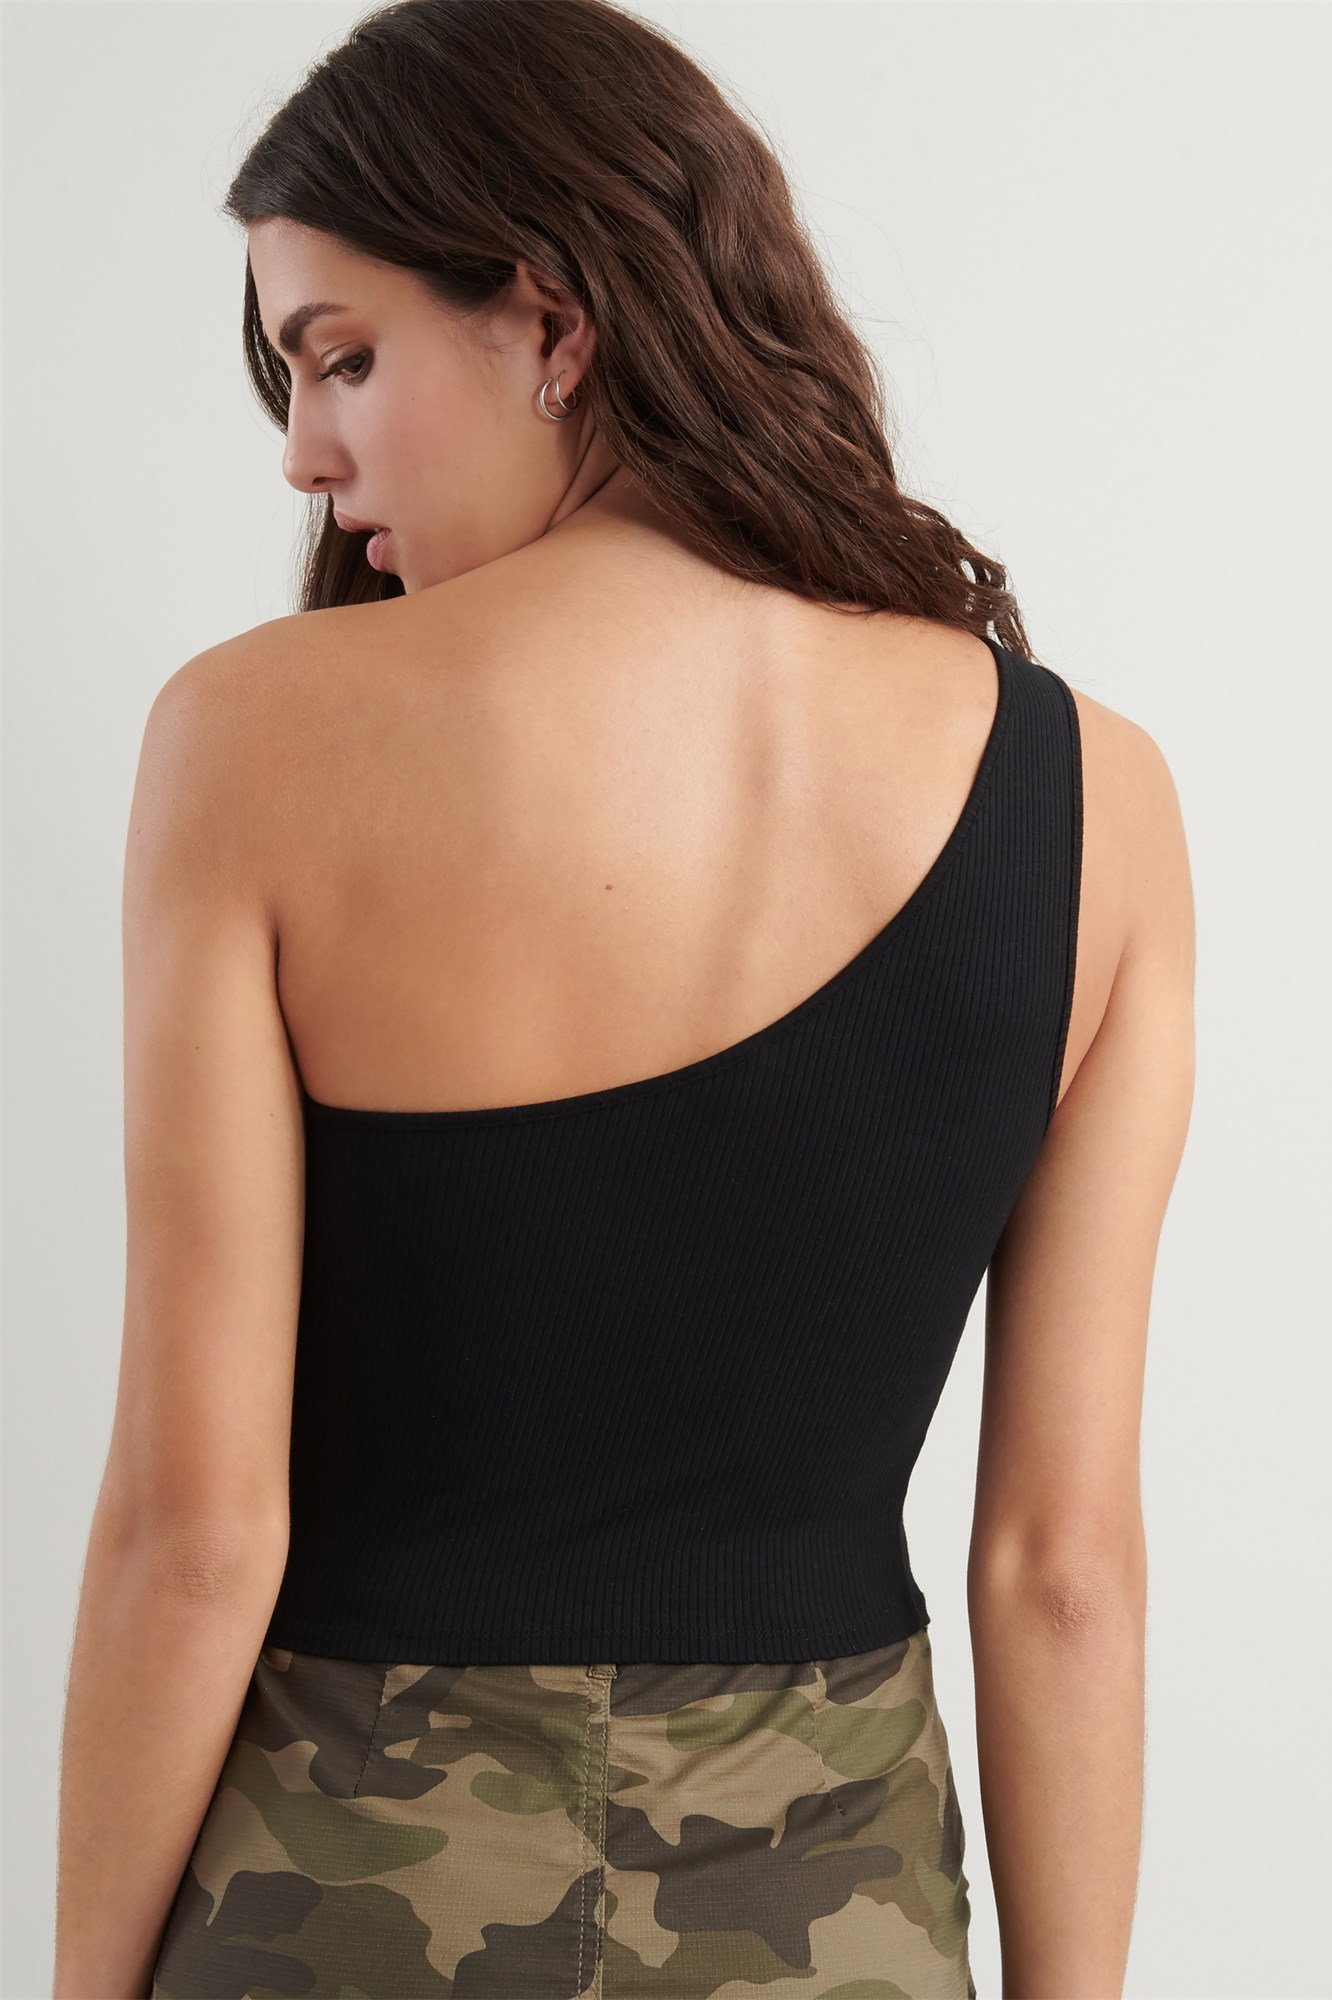 Halter Top Bodysuit